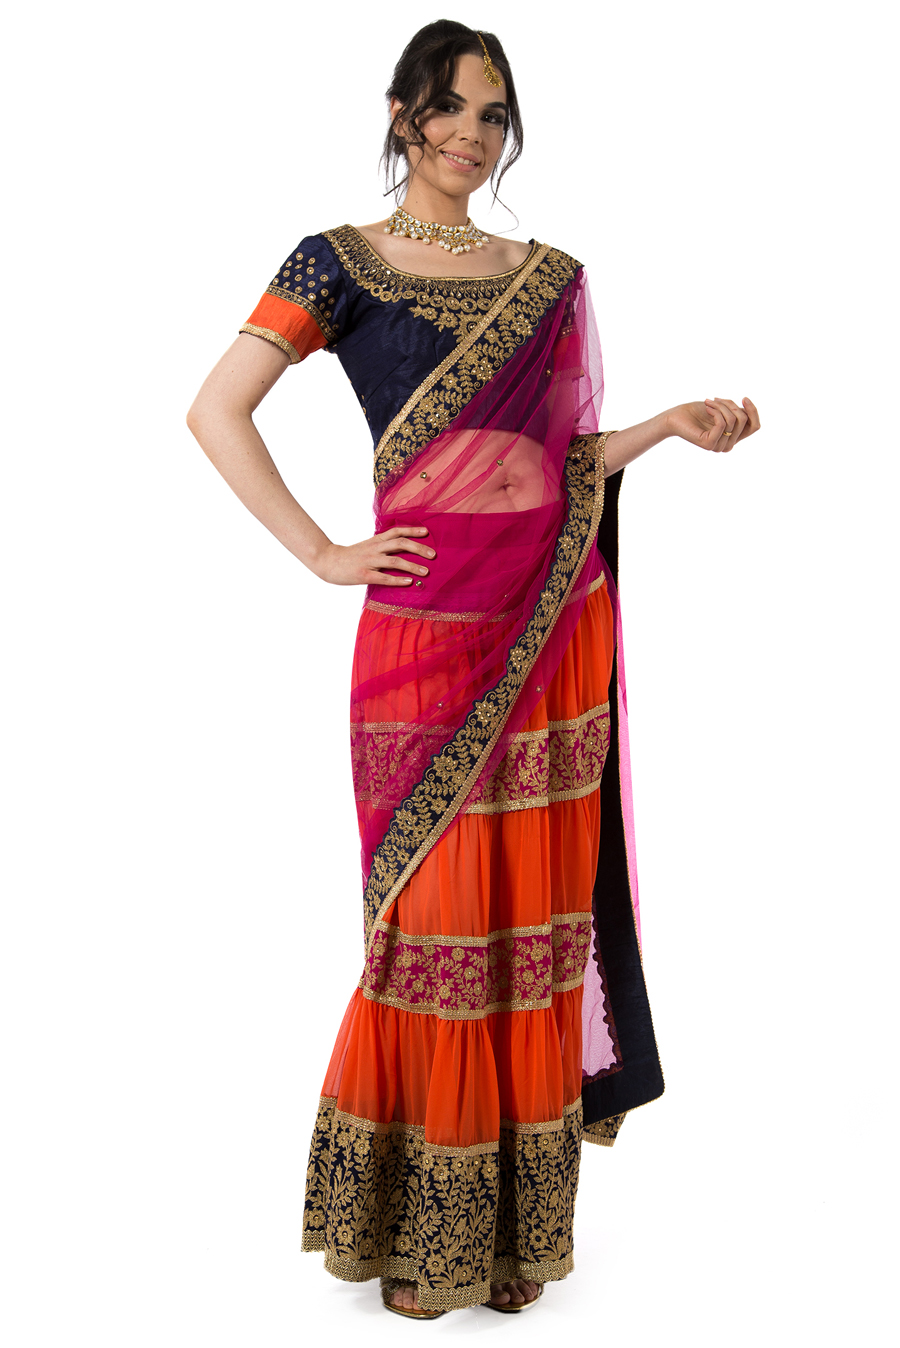 Emerald Cobalt Blue, Orange, and Pink Lehenga Saree